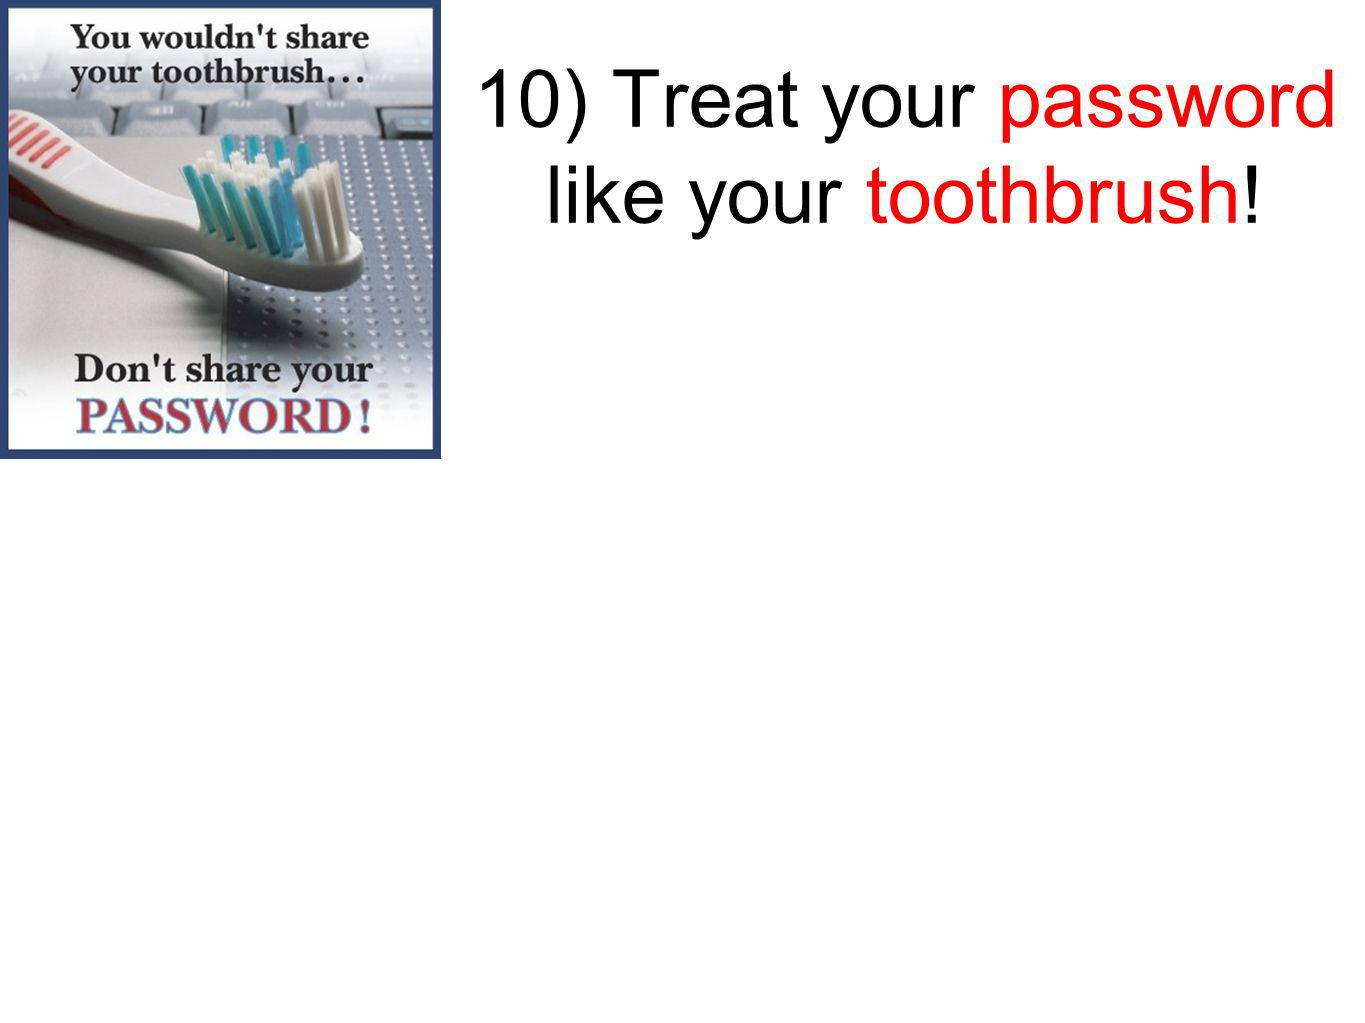 10) Treat your password like your toothbrush!